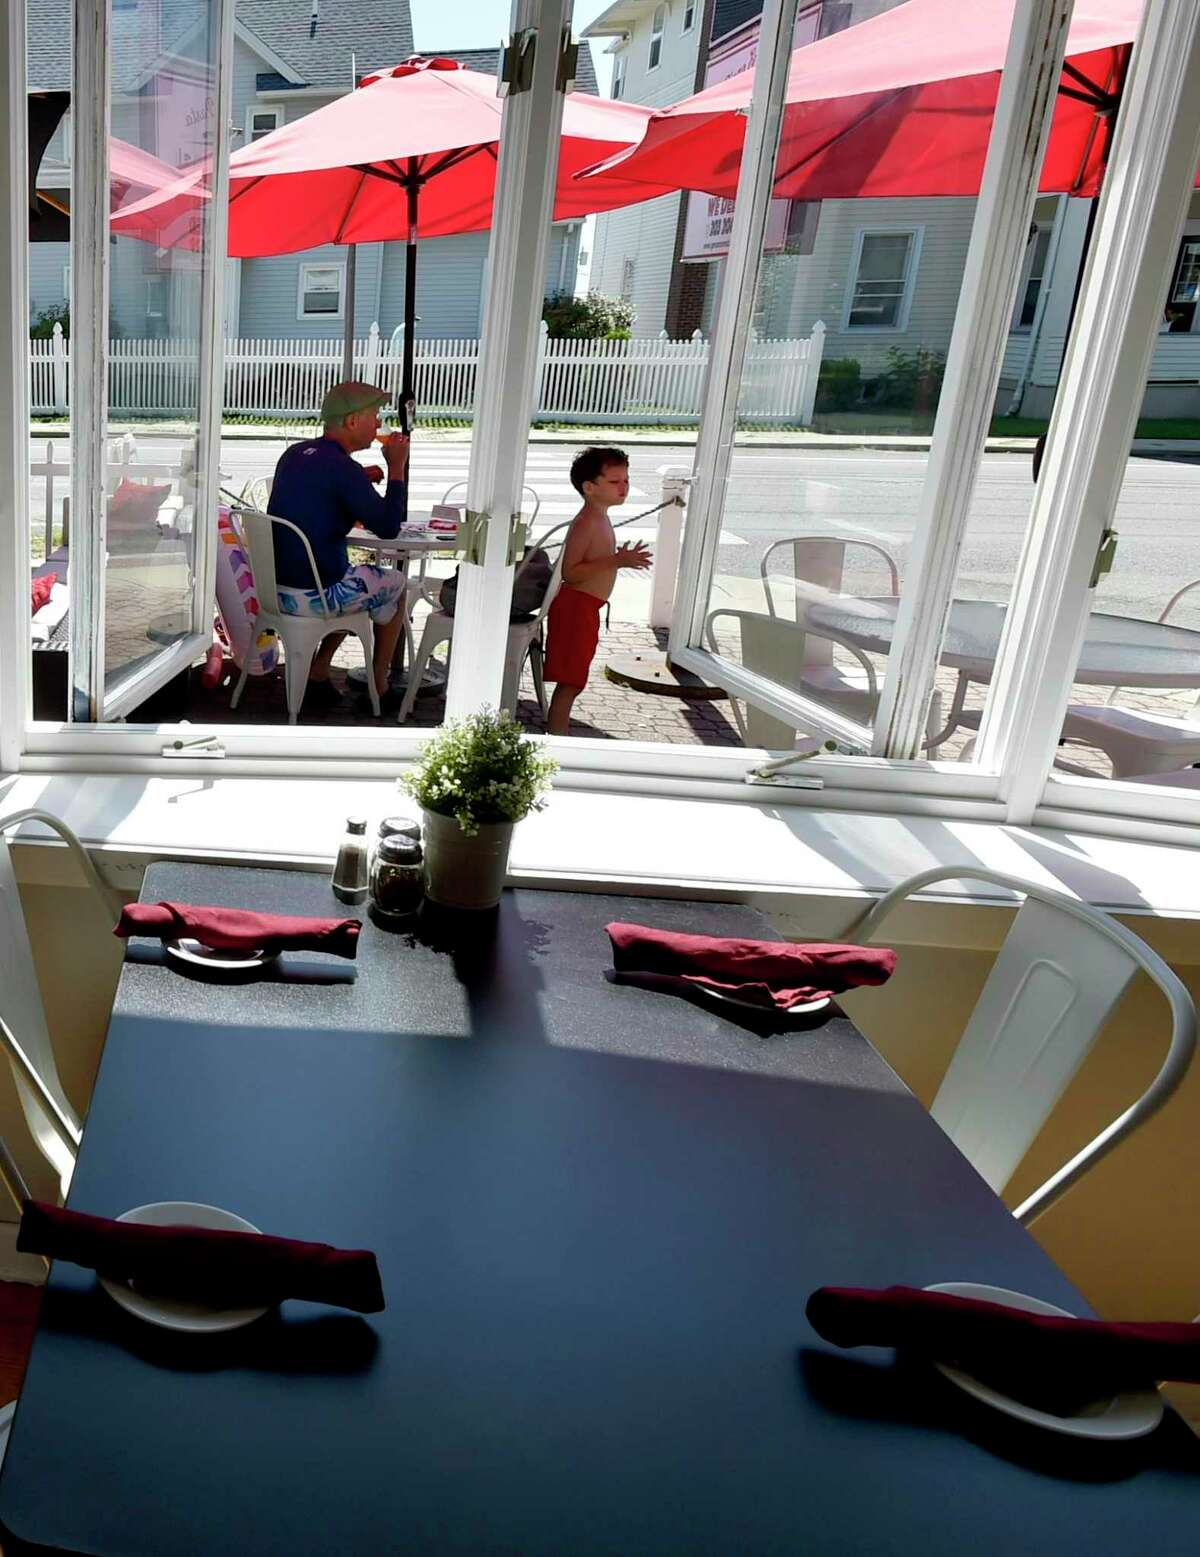 Branford, Connecticut - Friday, August 30, 2019: Genaros Pizza & Pasta in Branford iocated next to the Short Beach post office, that offers pizza to pastas to seafood to sandwiches has an outdoor patio.